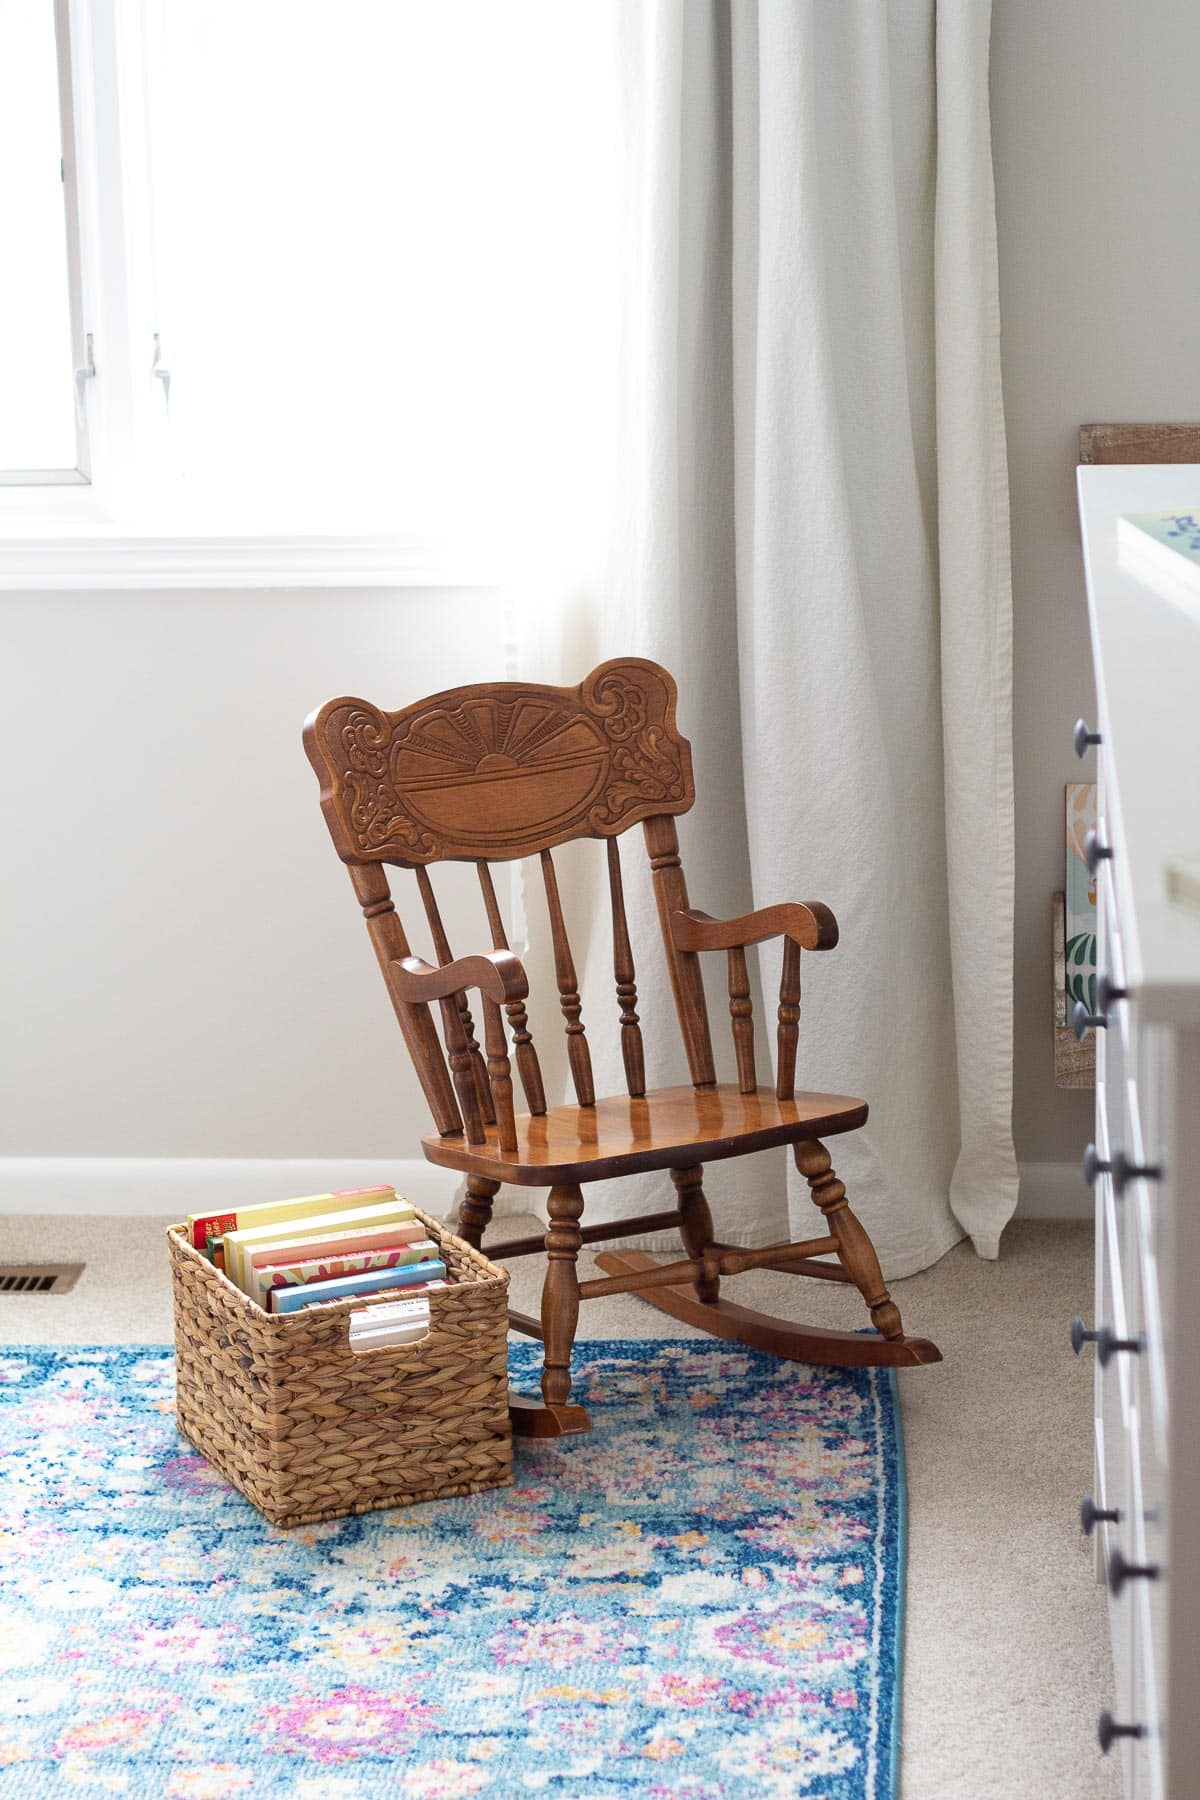 Baby board books stored in a basket alongside a vintage toddler's rocking chair.